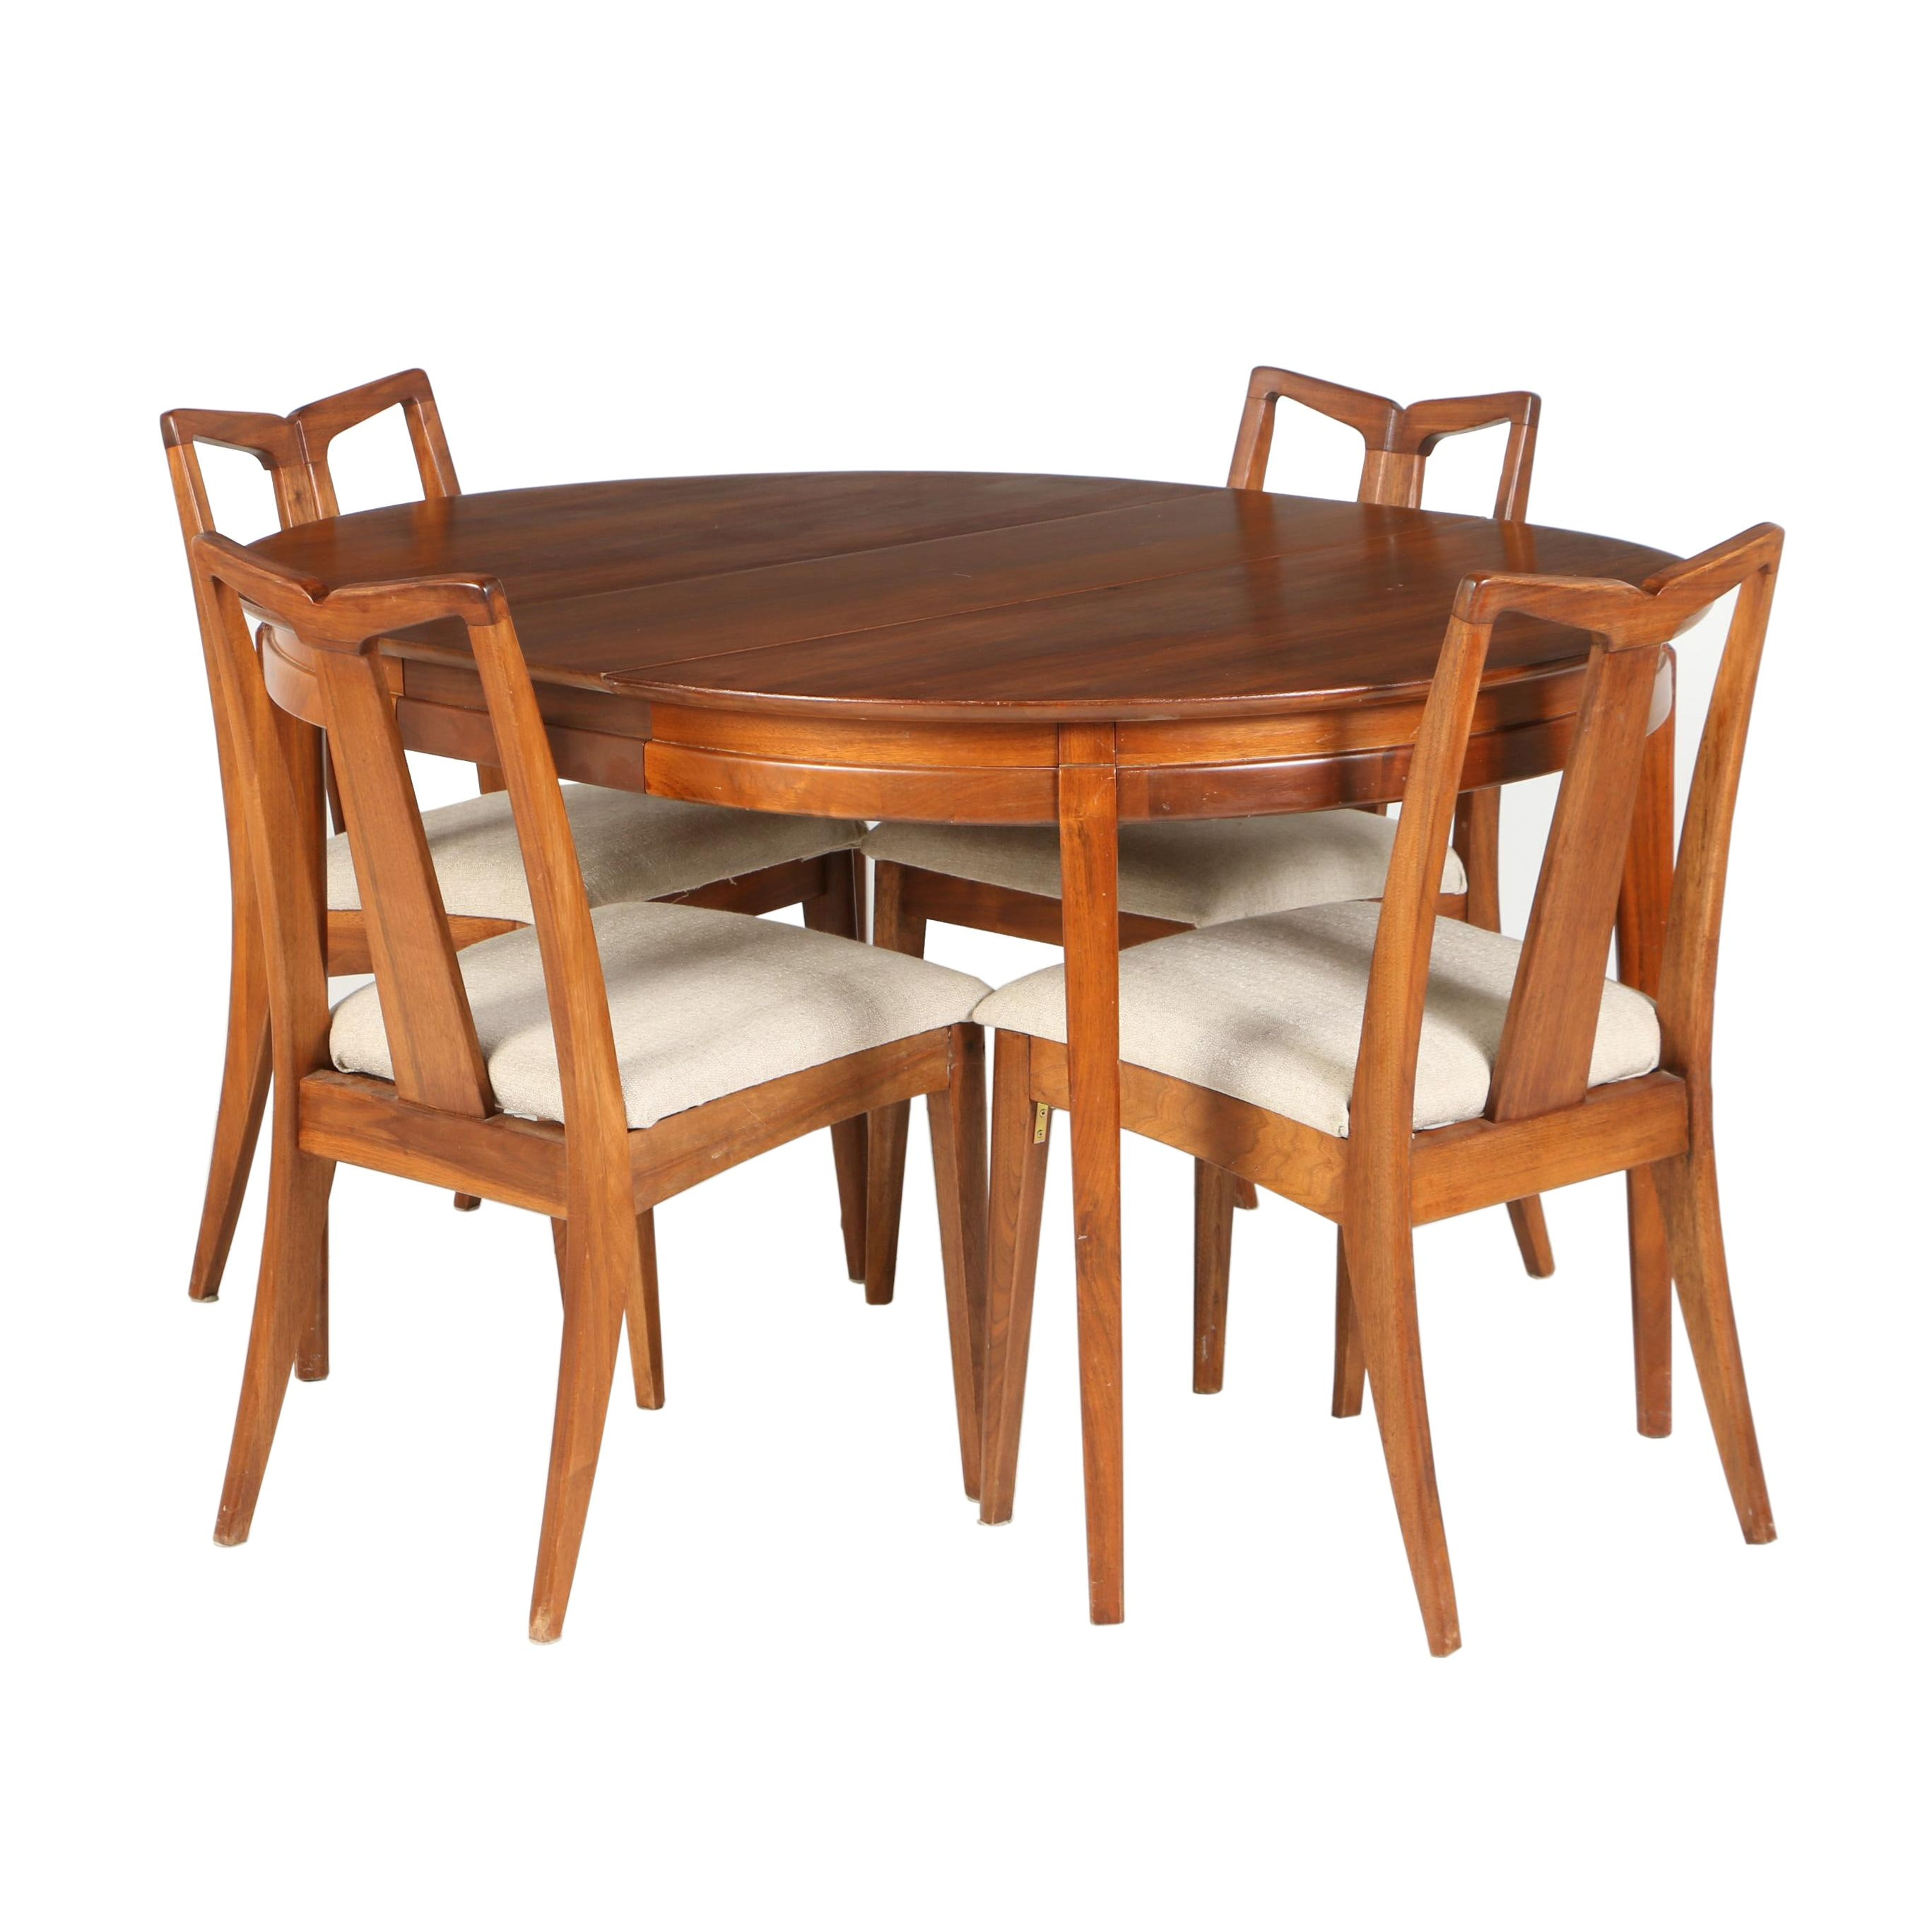 "Mid Century Modern Walnut ""Pavilion"" Five-Piece Dining Set by Drexel, Circa 1960"